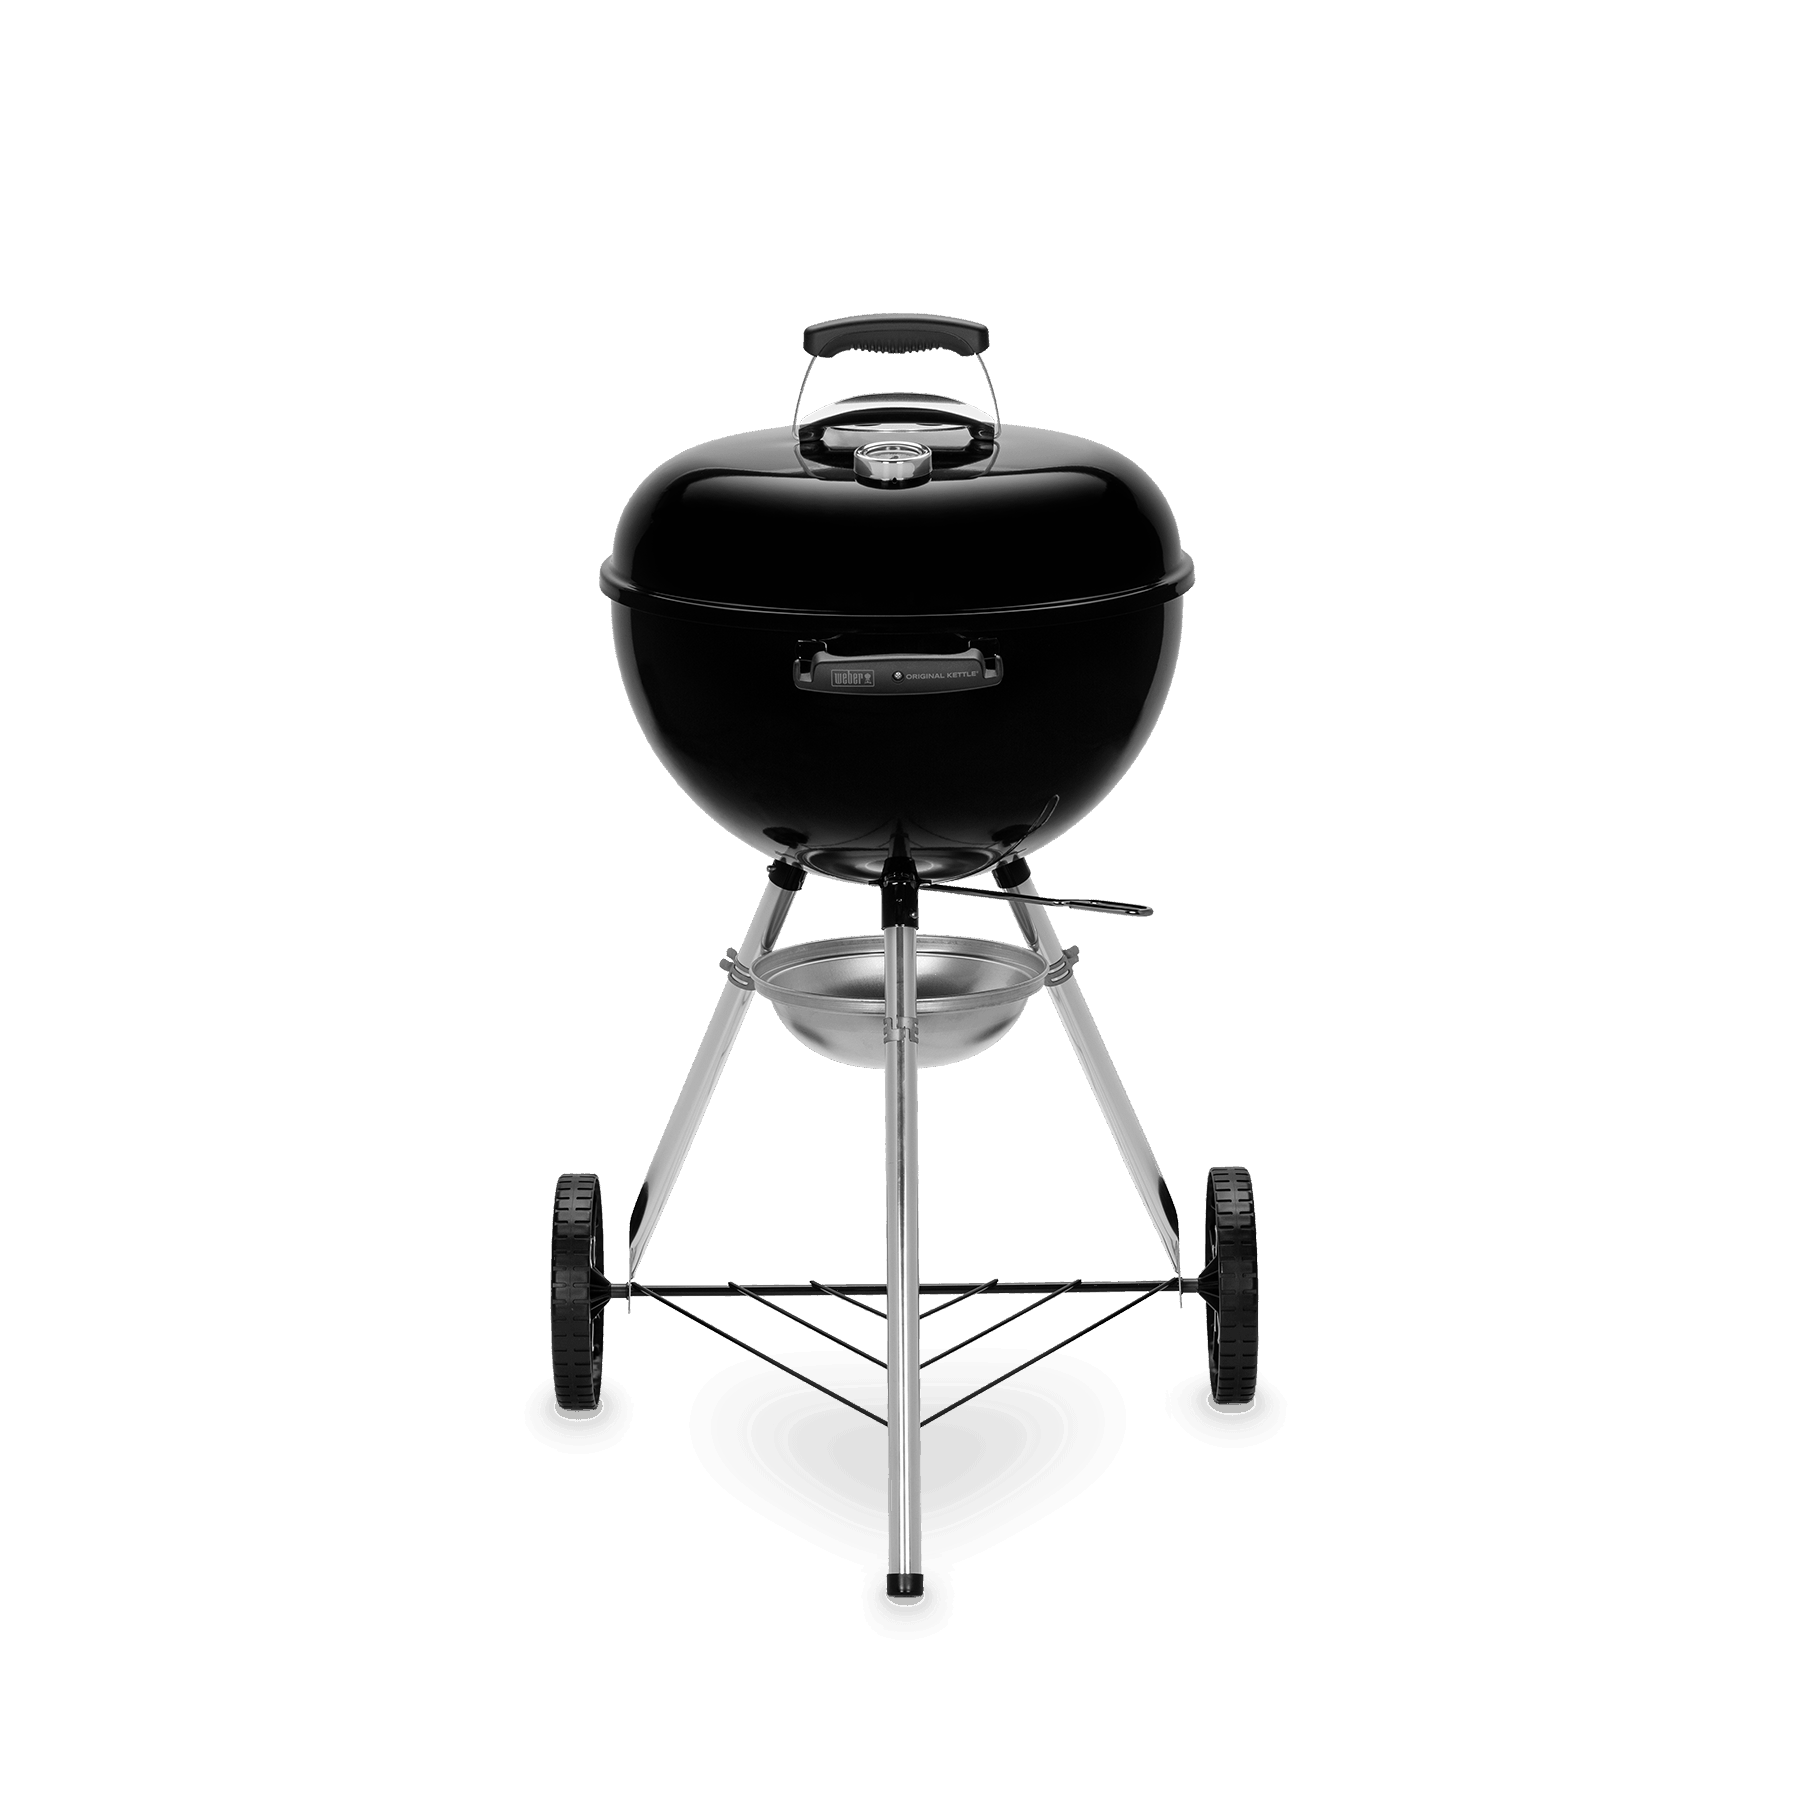 Original Kettle E-4710 Kolgrill 47 cm